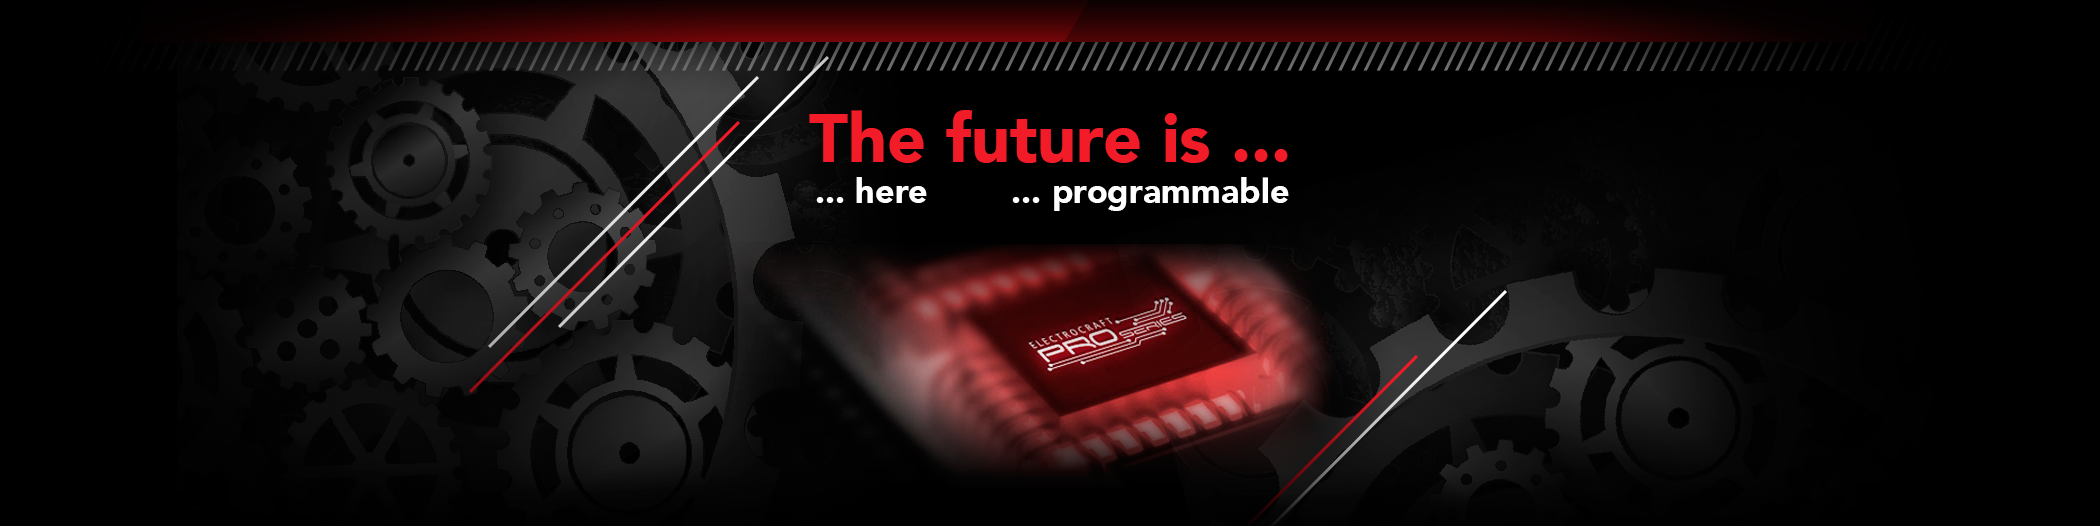 The future is here and programmable. Programmable PRO Series drives.